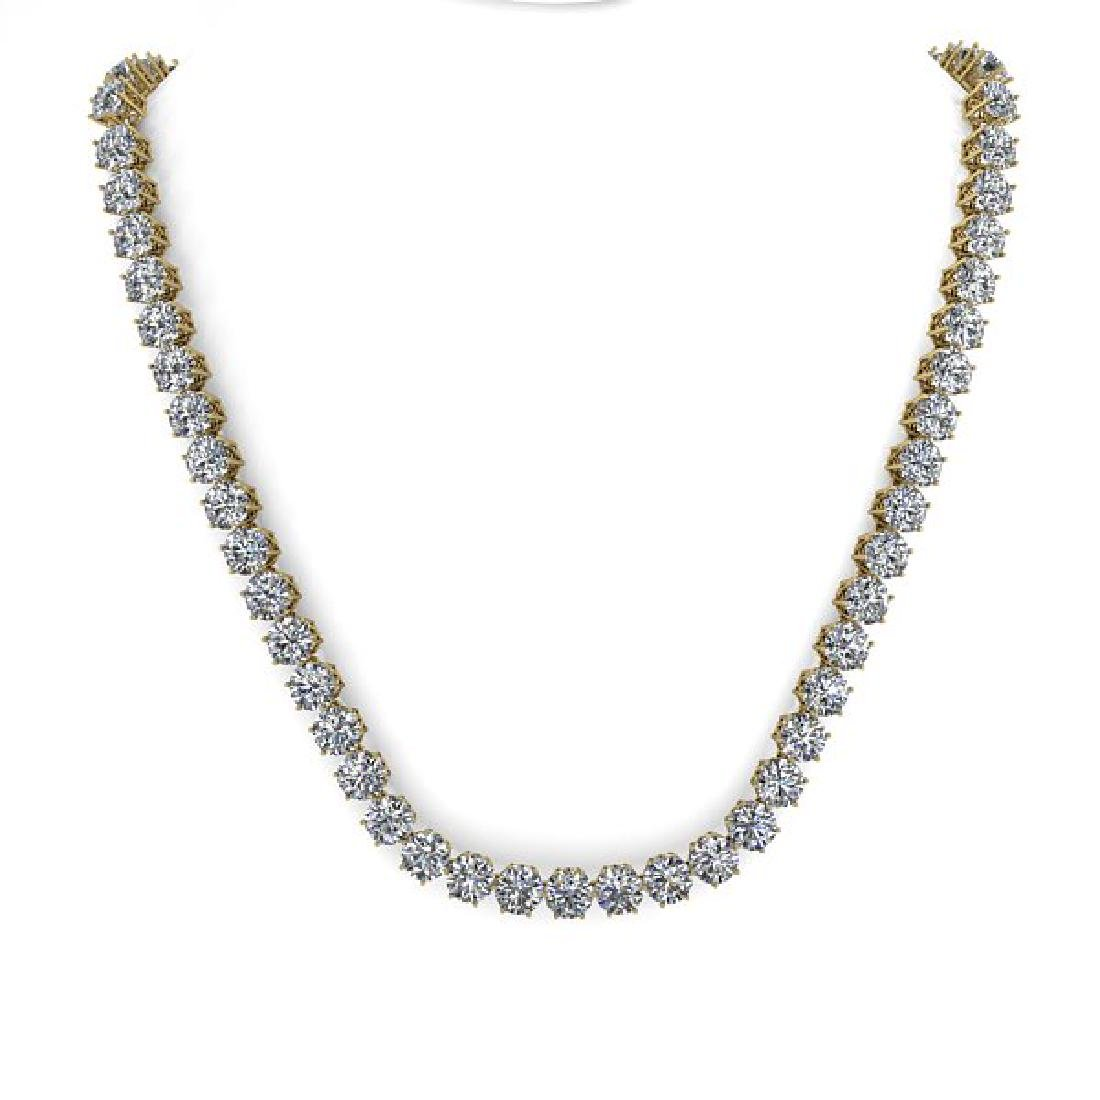 39 CTW SI Certified Diamond Necklace 14K Yellow Gold - 3